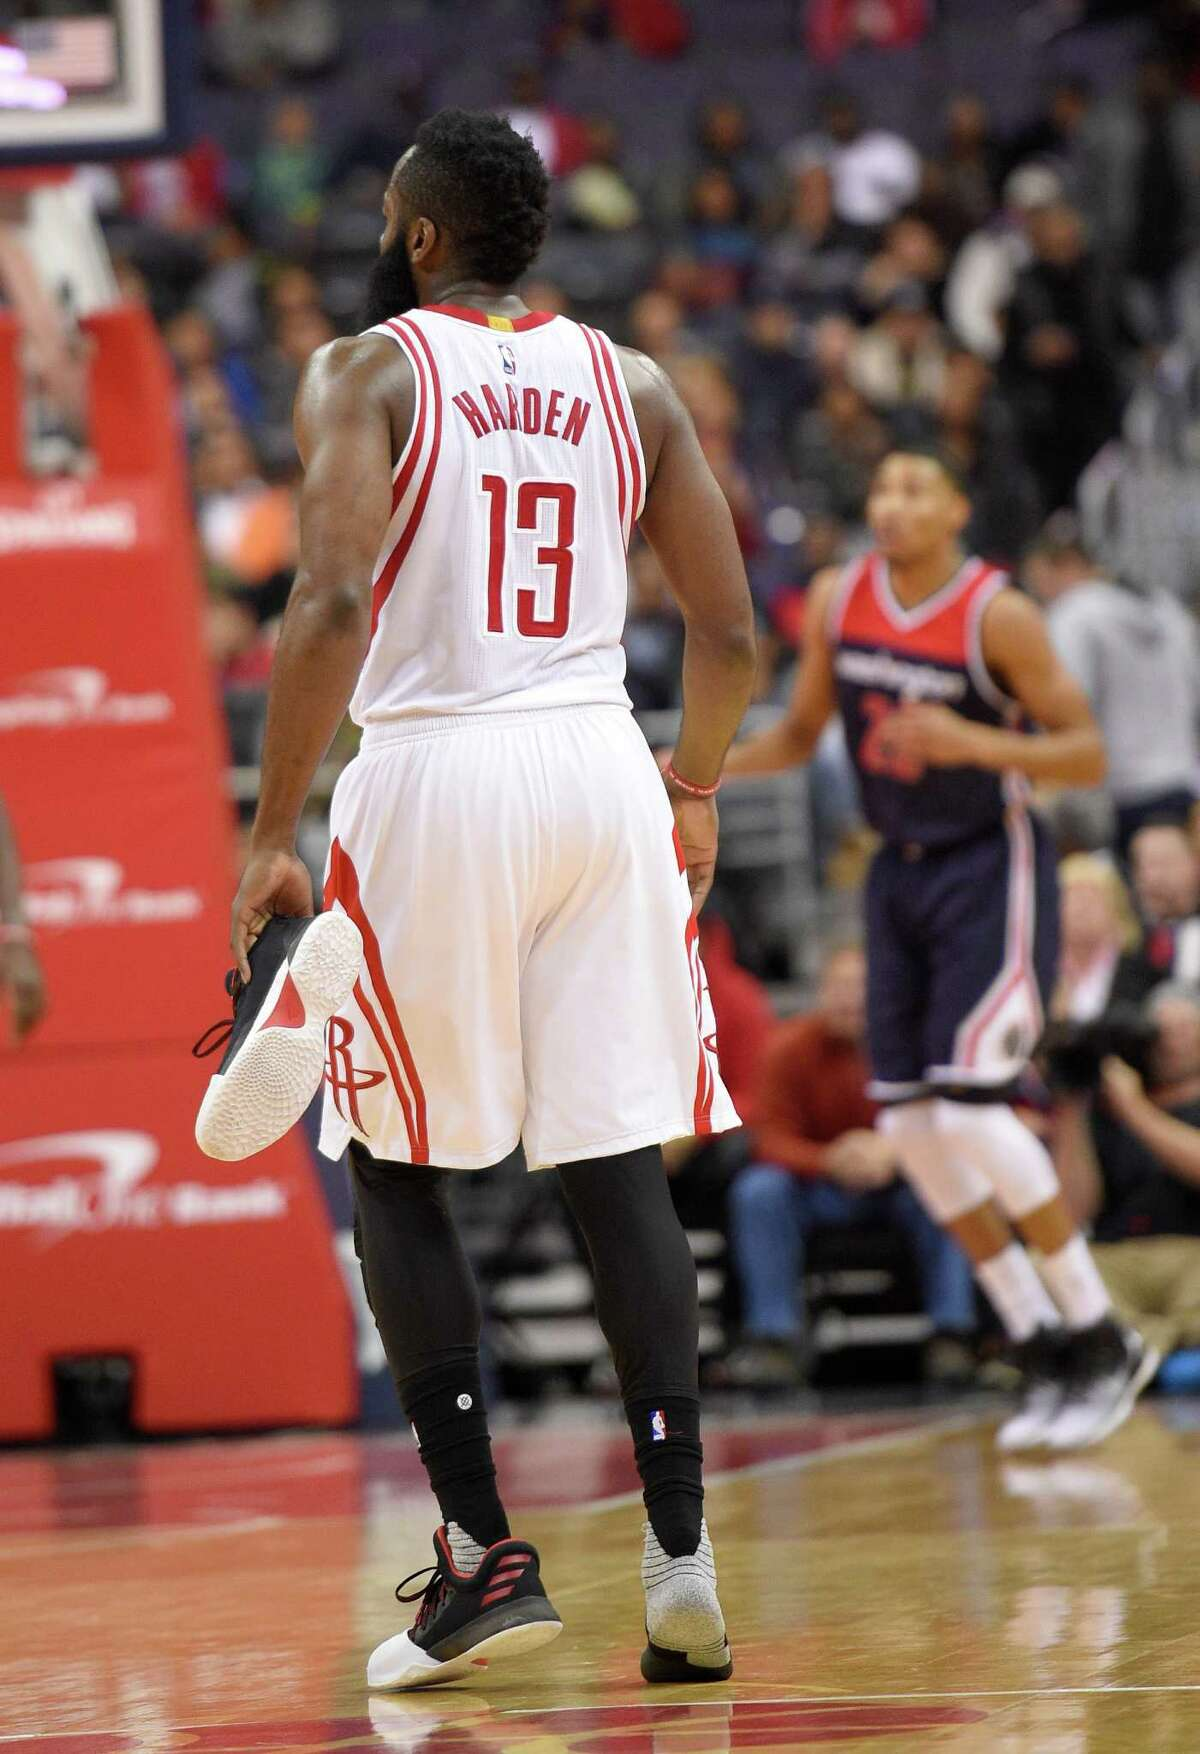 Houston Rockets guard James Harden (13) carries his shoe downcourt after it came off during the first half of an NBA preseason basketball game against the Washington Wizards, Monday, Nov. 7, 2016, in Washington. (AP Photo/Nick Wass)